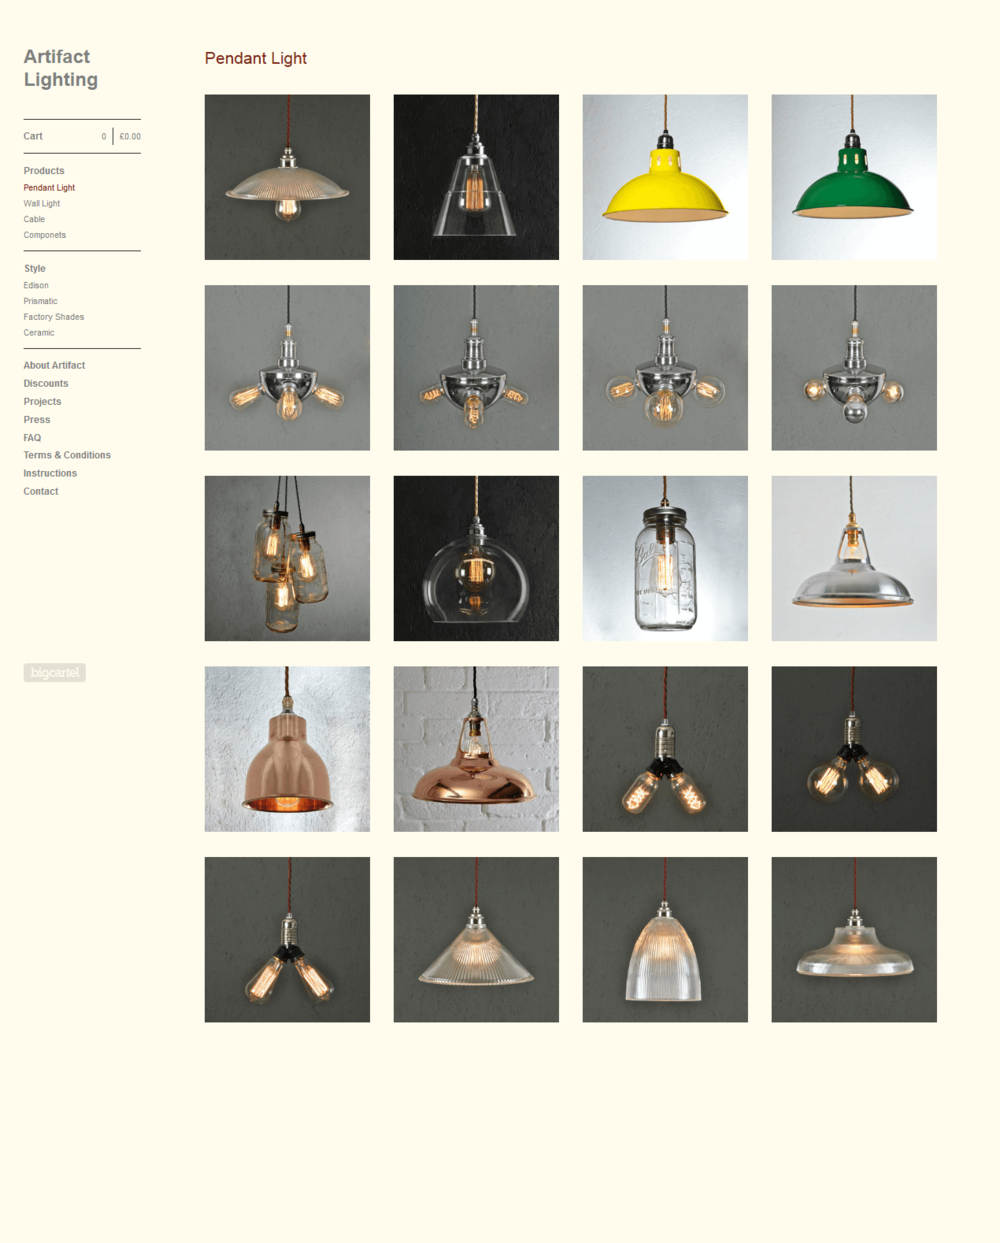 Artifact_Lighting_—_Pendant_Light_-_2014-12-04_12.03.18.png